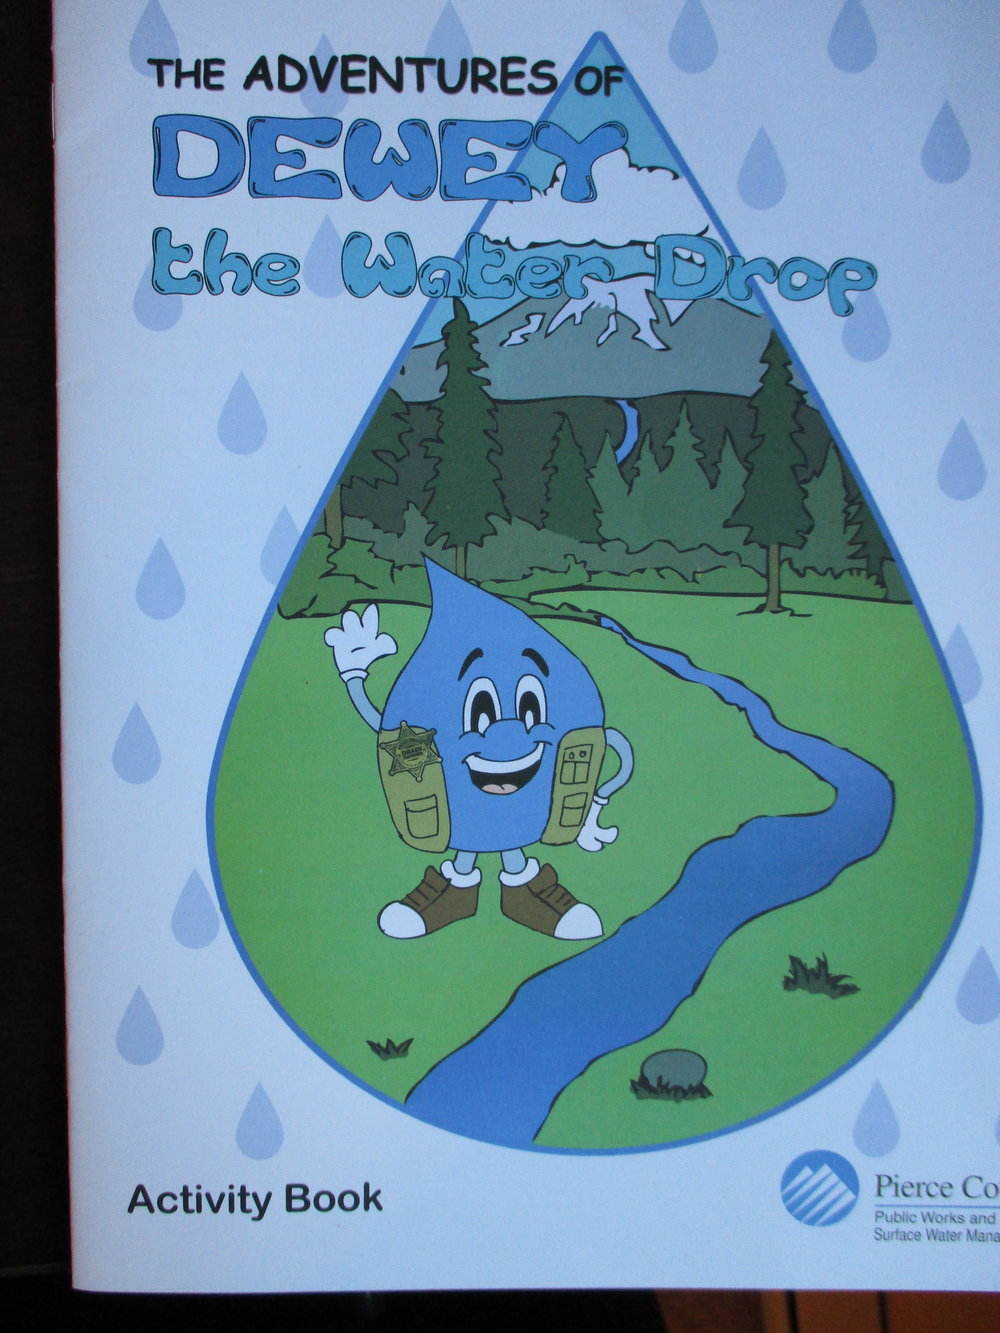 And how about this friendly li'l guy who misleads school children everywhere? Water droplets are not teardrop shaped. Rain drops are not teardrop shaped. Even tears are not teardrop shaped! Only when water leaks or drips slowly out of a faucet does it resemble this shape. Rain drops are the shape of a hamburger bun--slightly convex on top. But who wants to learn about their watershed or the water cycle from a blue hamburger bun?